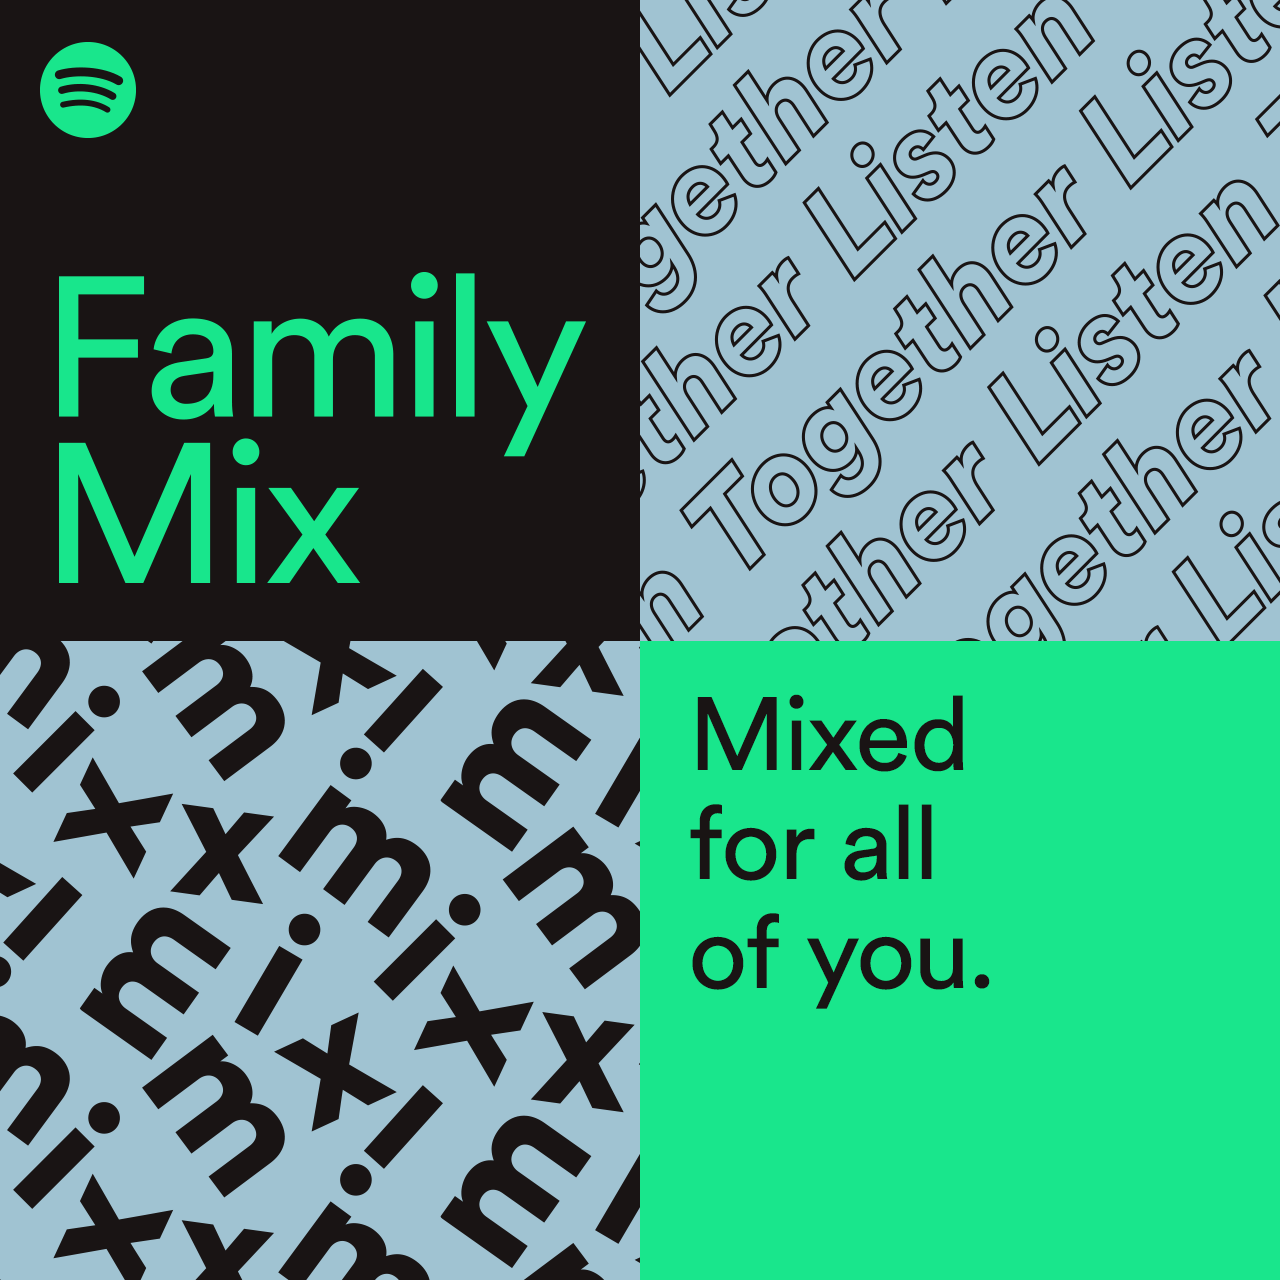 Upgrade my spotify account to family